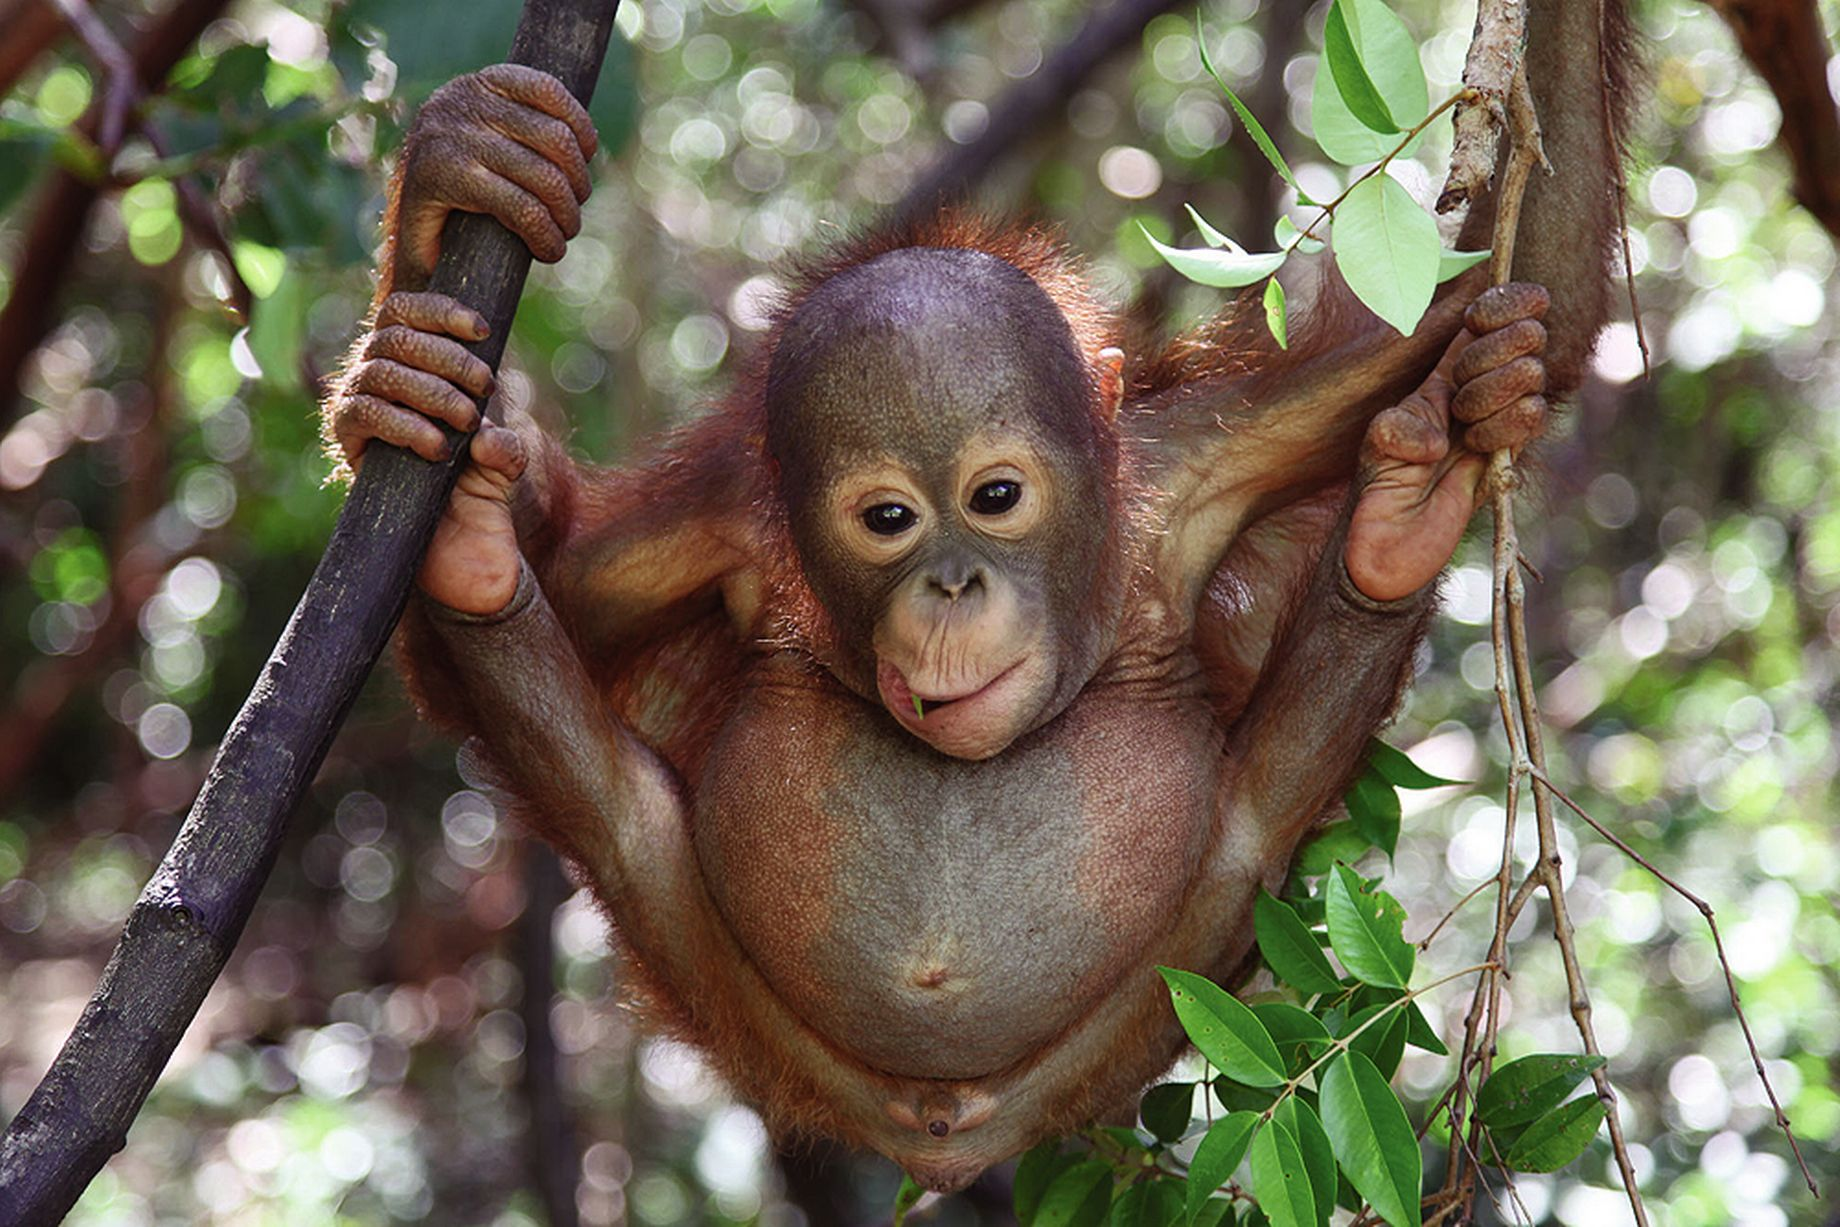 Orangutan-Rescue-Into-The-Wild-National-Geographic.jpg